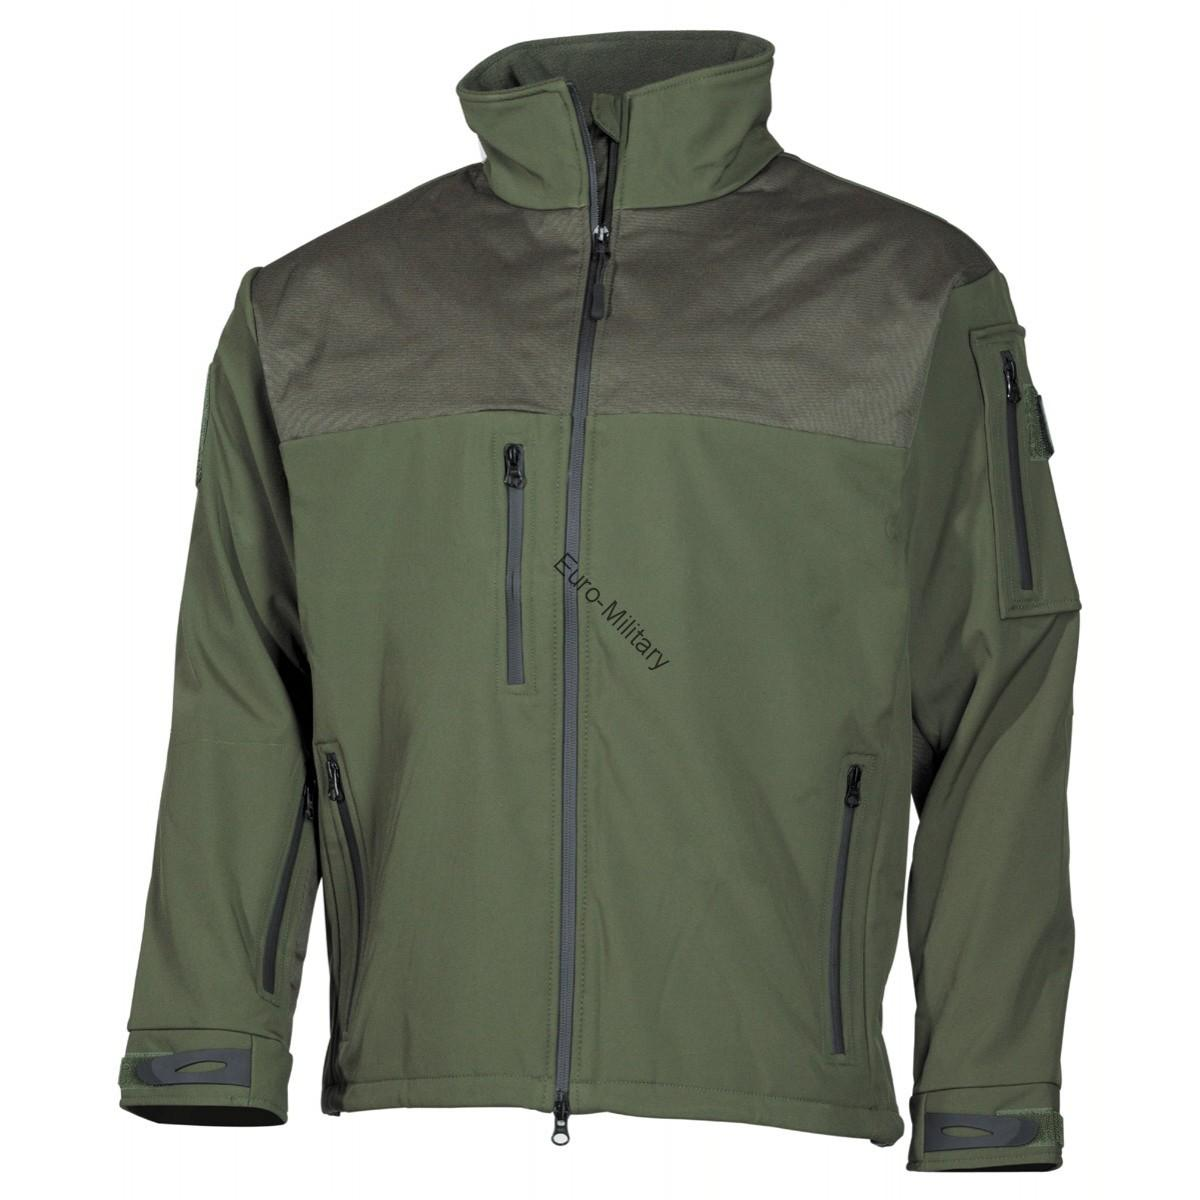 High Level Soft Shell Waterproof Jacket AUSTRALIA - OD Green